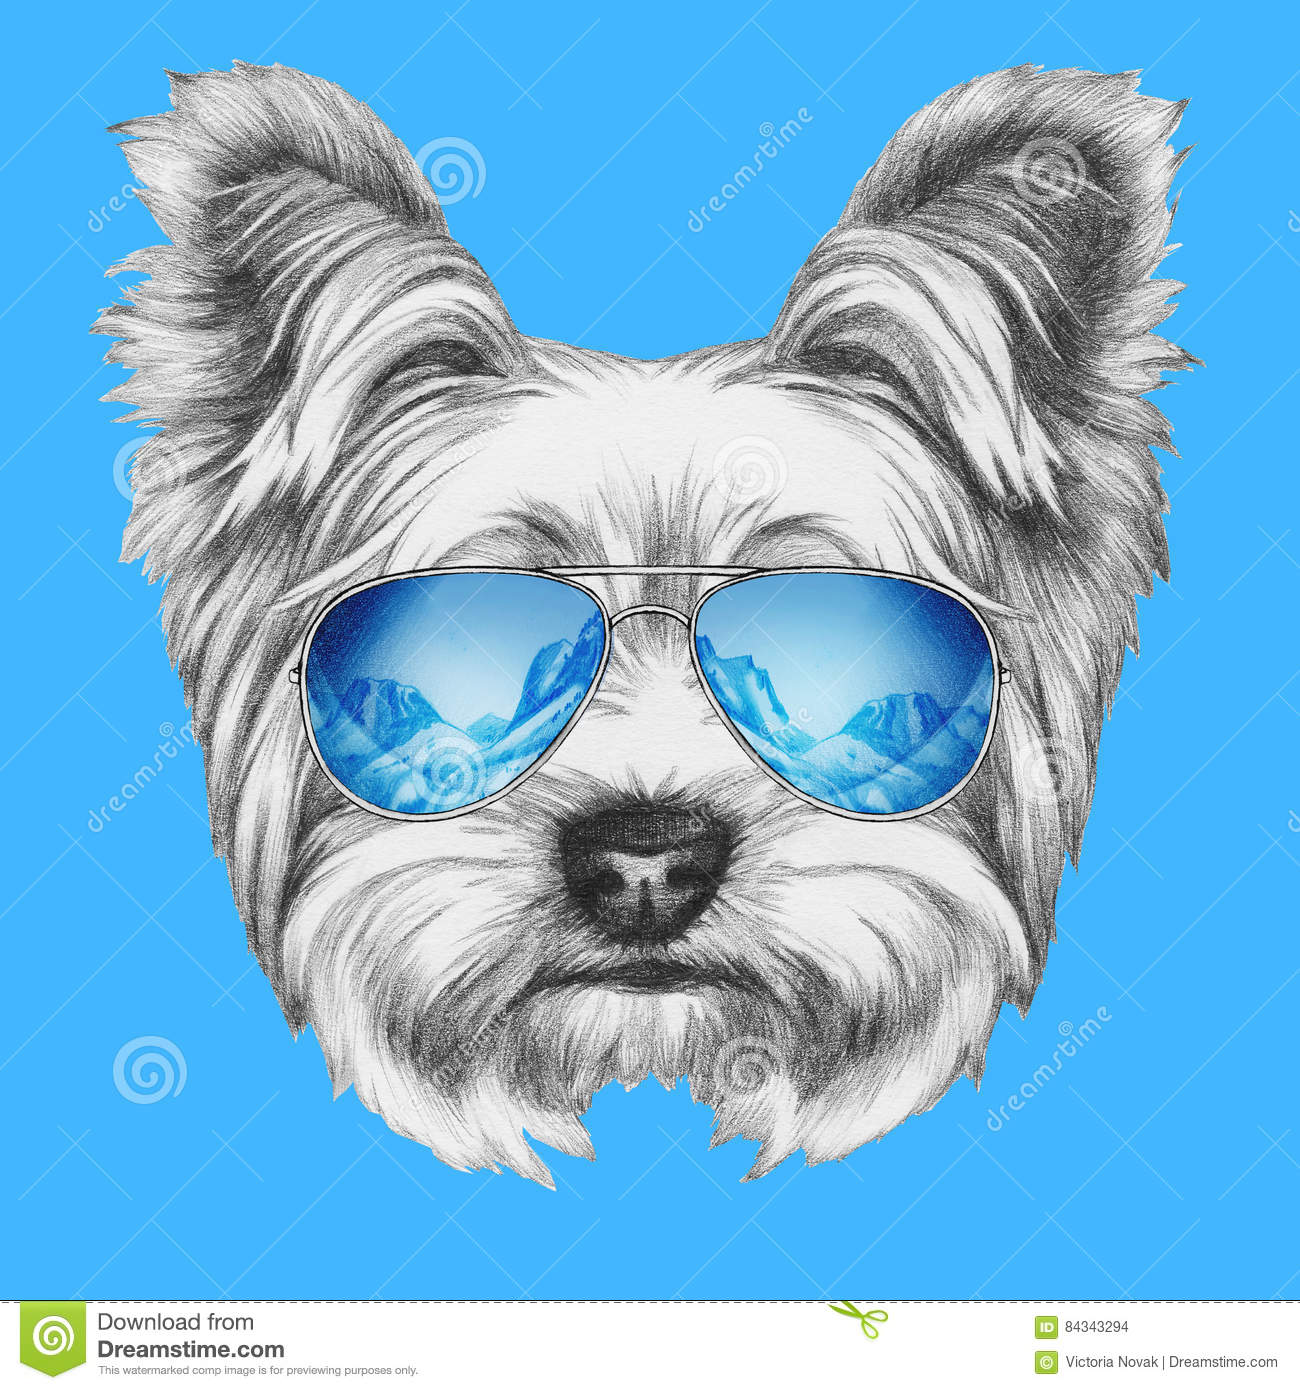 Portrait Of Yorkshire Terrier Dog With Mirror Sunglasses Stock